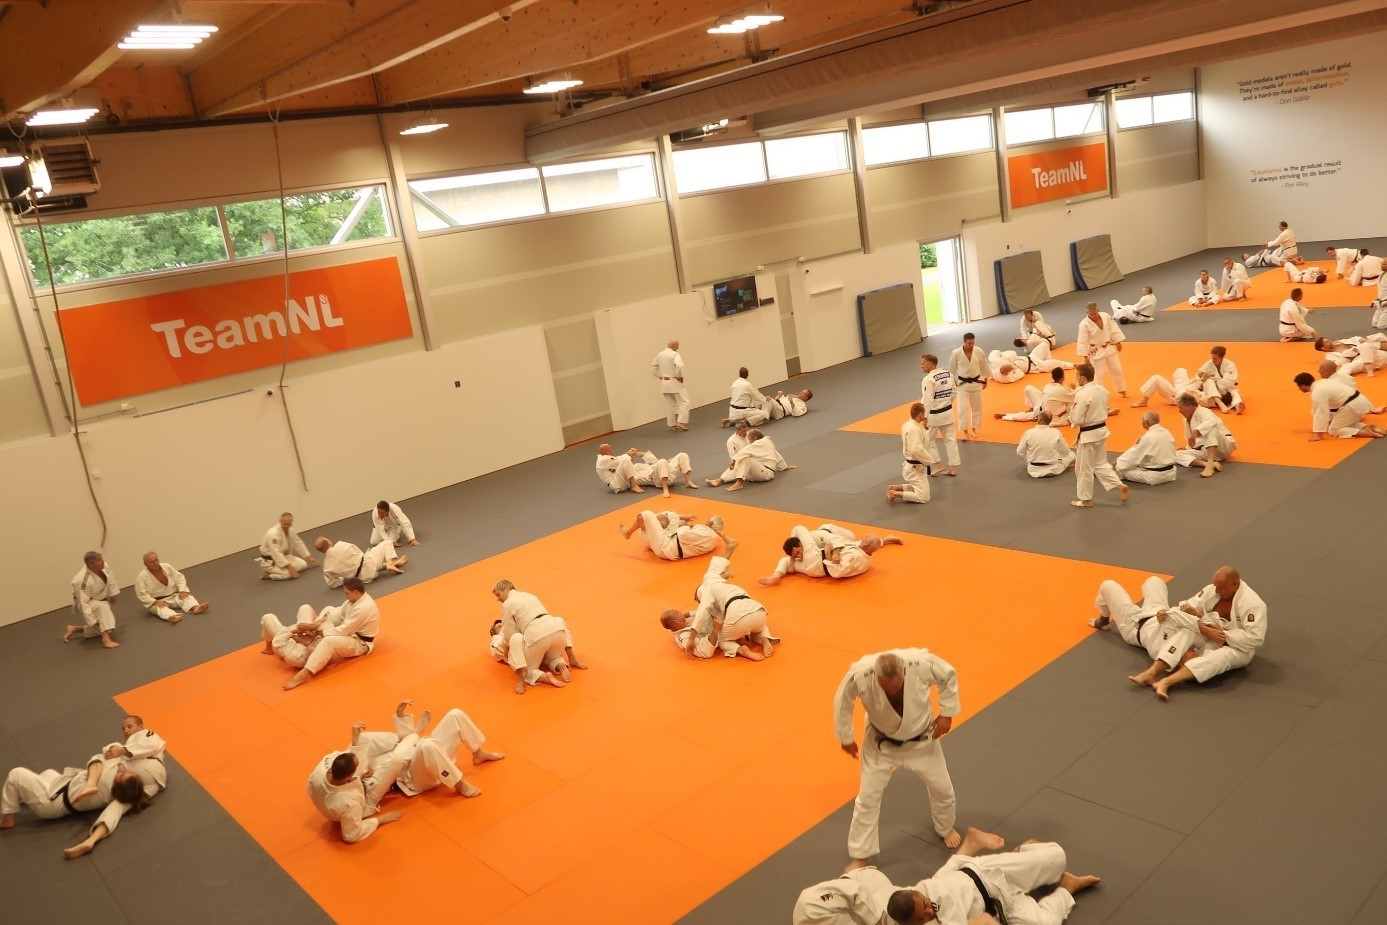 training-kata.jpg#asset:1849566